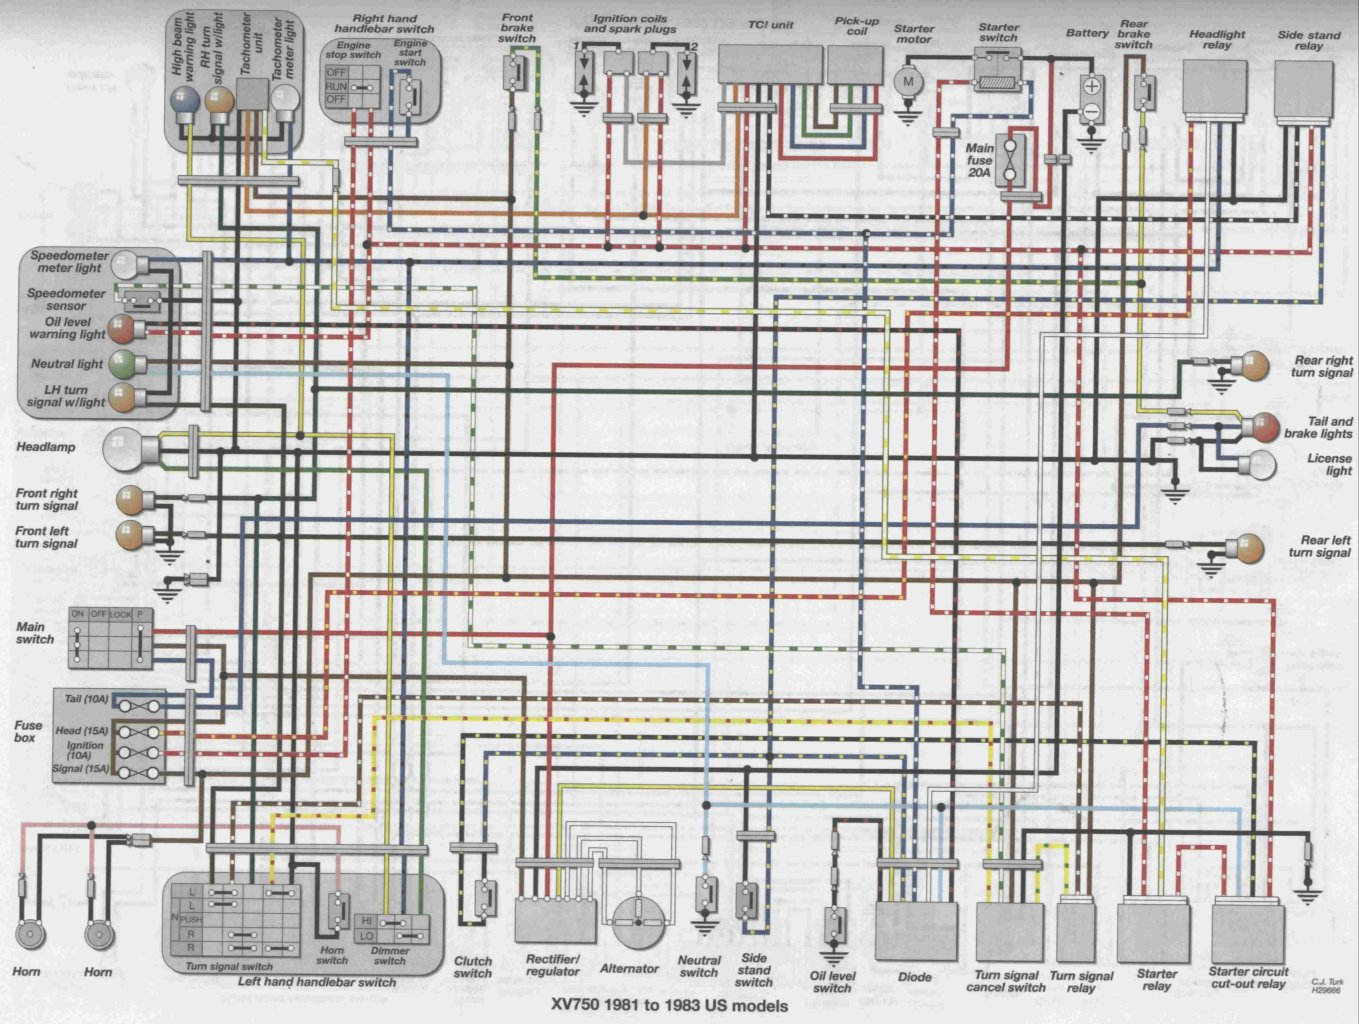 87 yamaha wiring diagrams wiring schematic diagram87 yamaha xv1000 wiring all wiring diagram titan motorcycle wiring diagram 87 yamaha xv1000 wiring auto